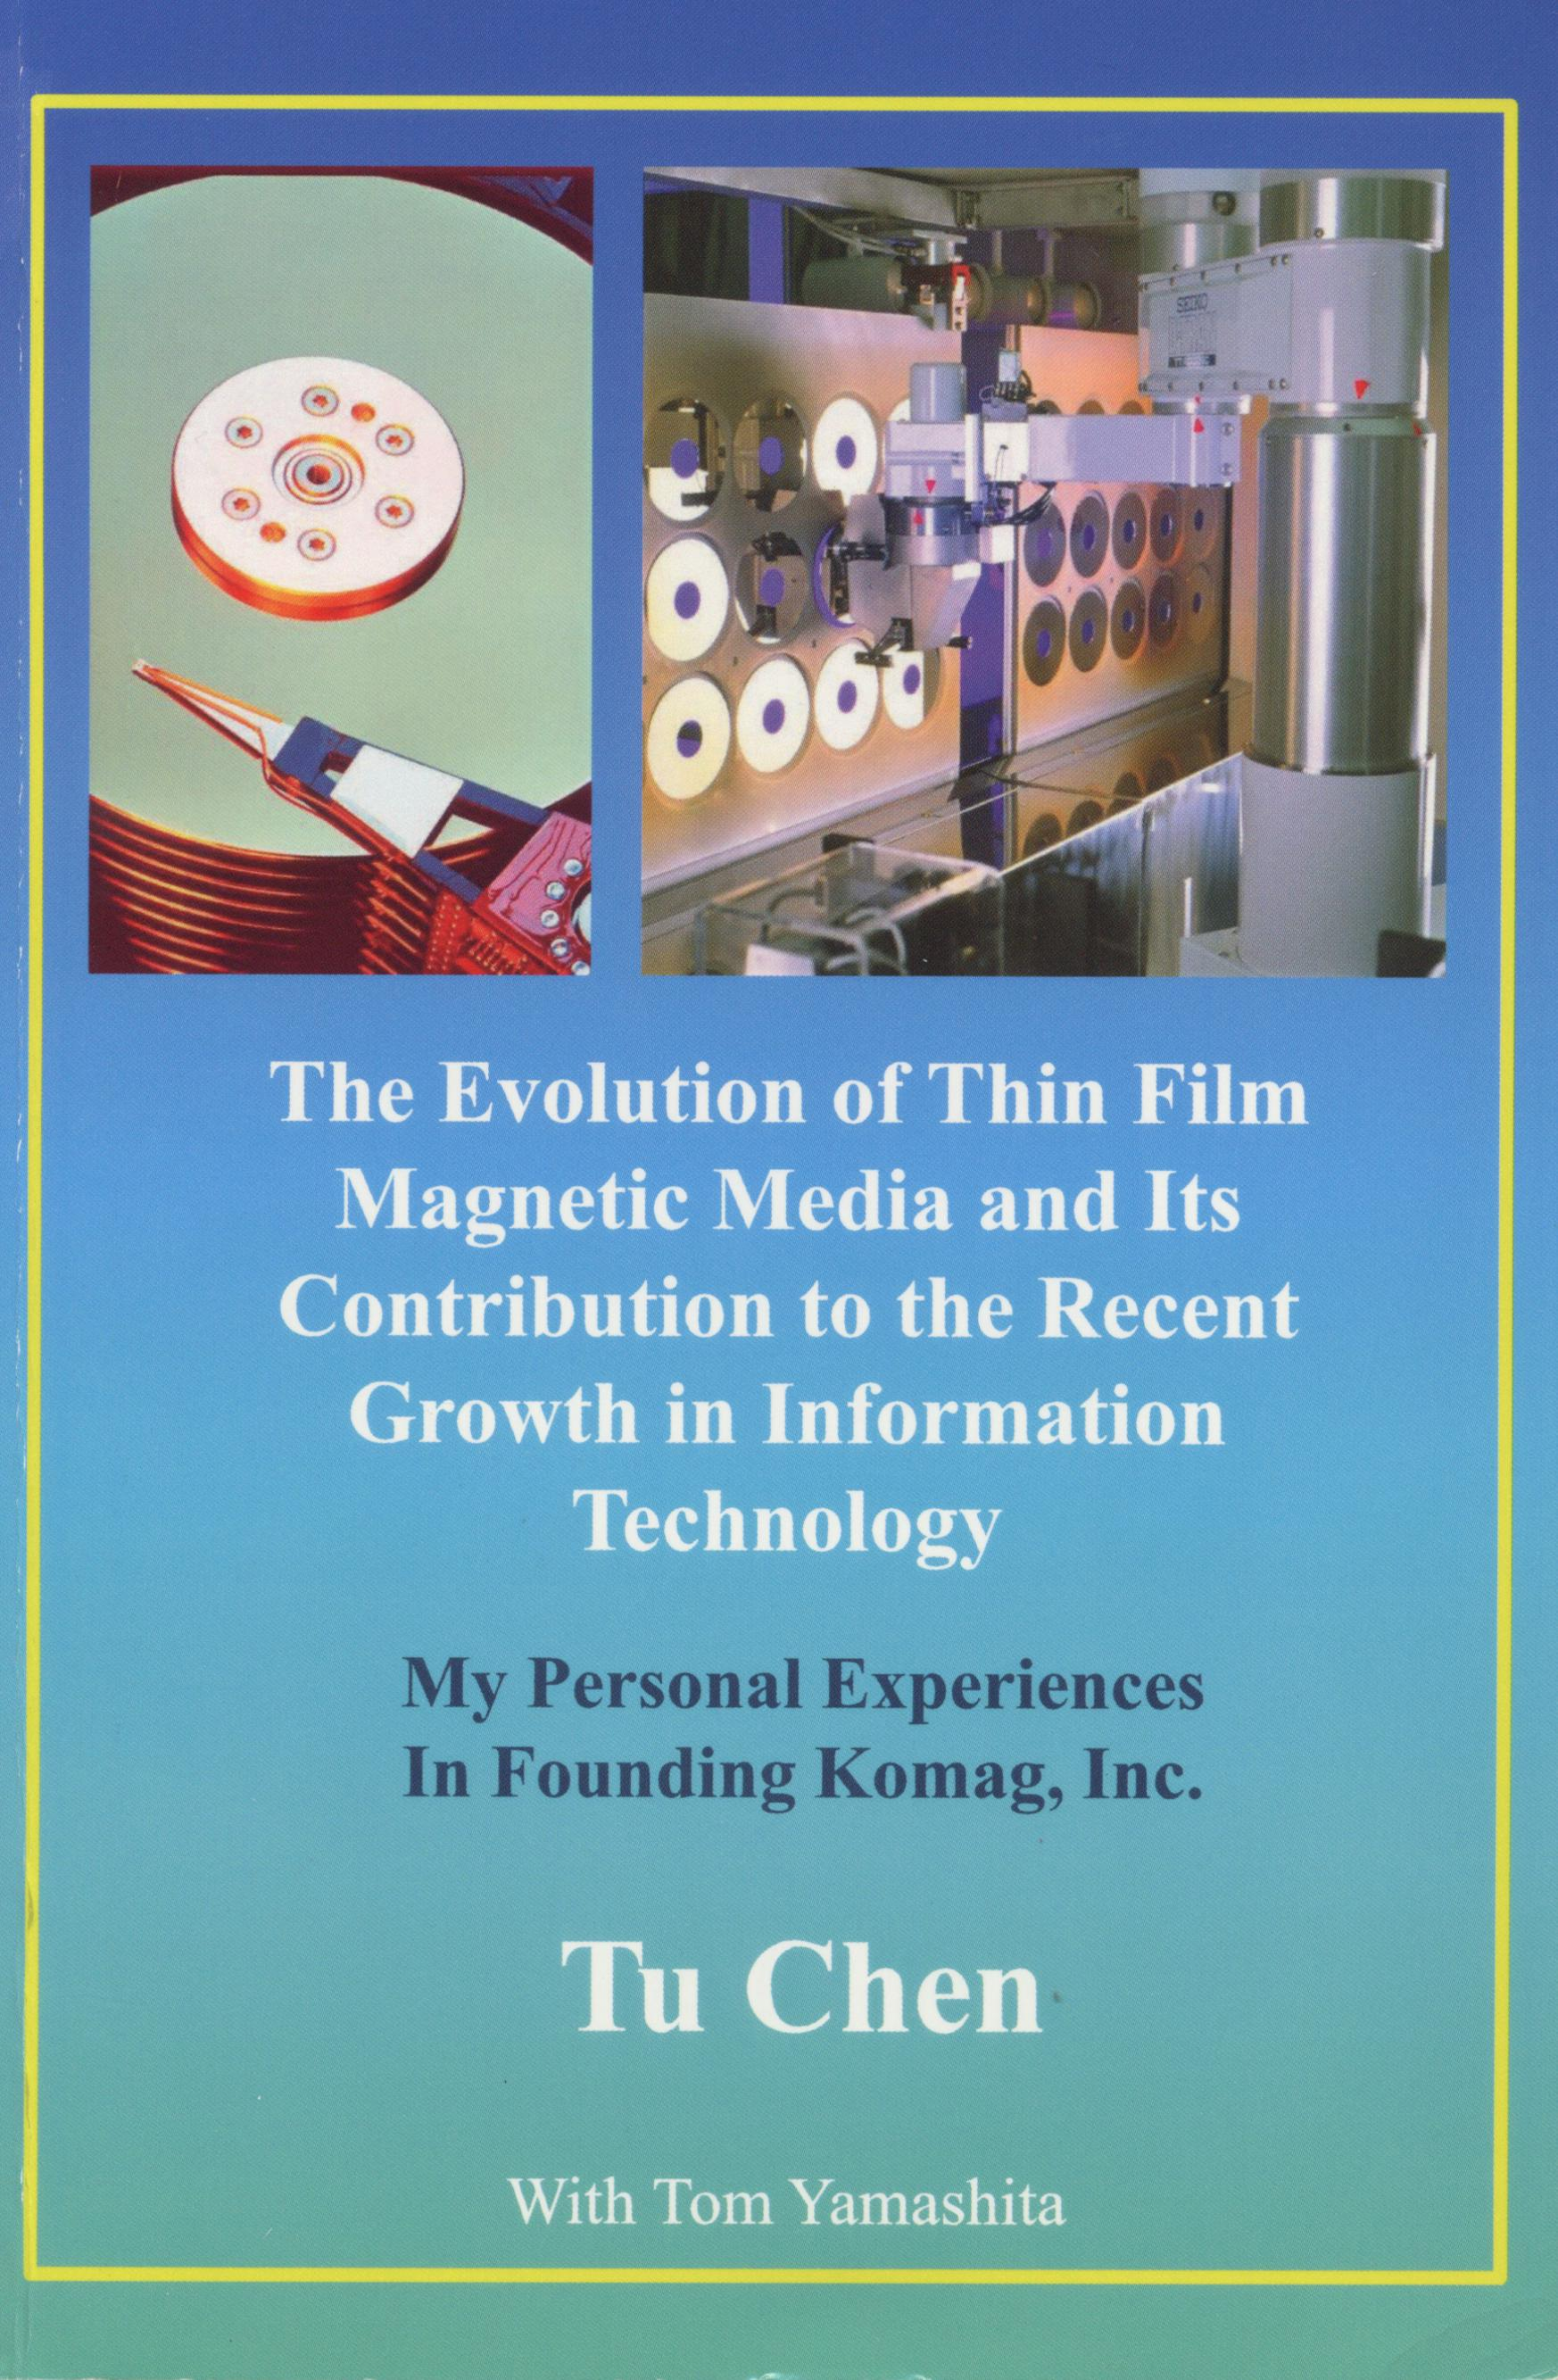 1296. The Evolution of Thin Film Magnetic Media and Its Contribution to the Recent Growth in Information Technology/Tu Chen/2013